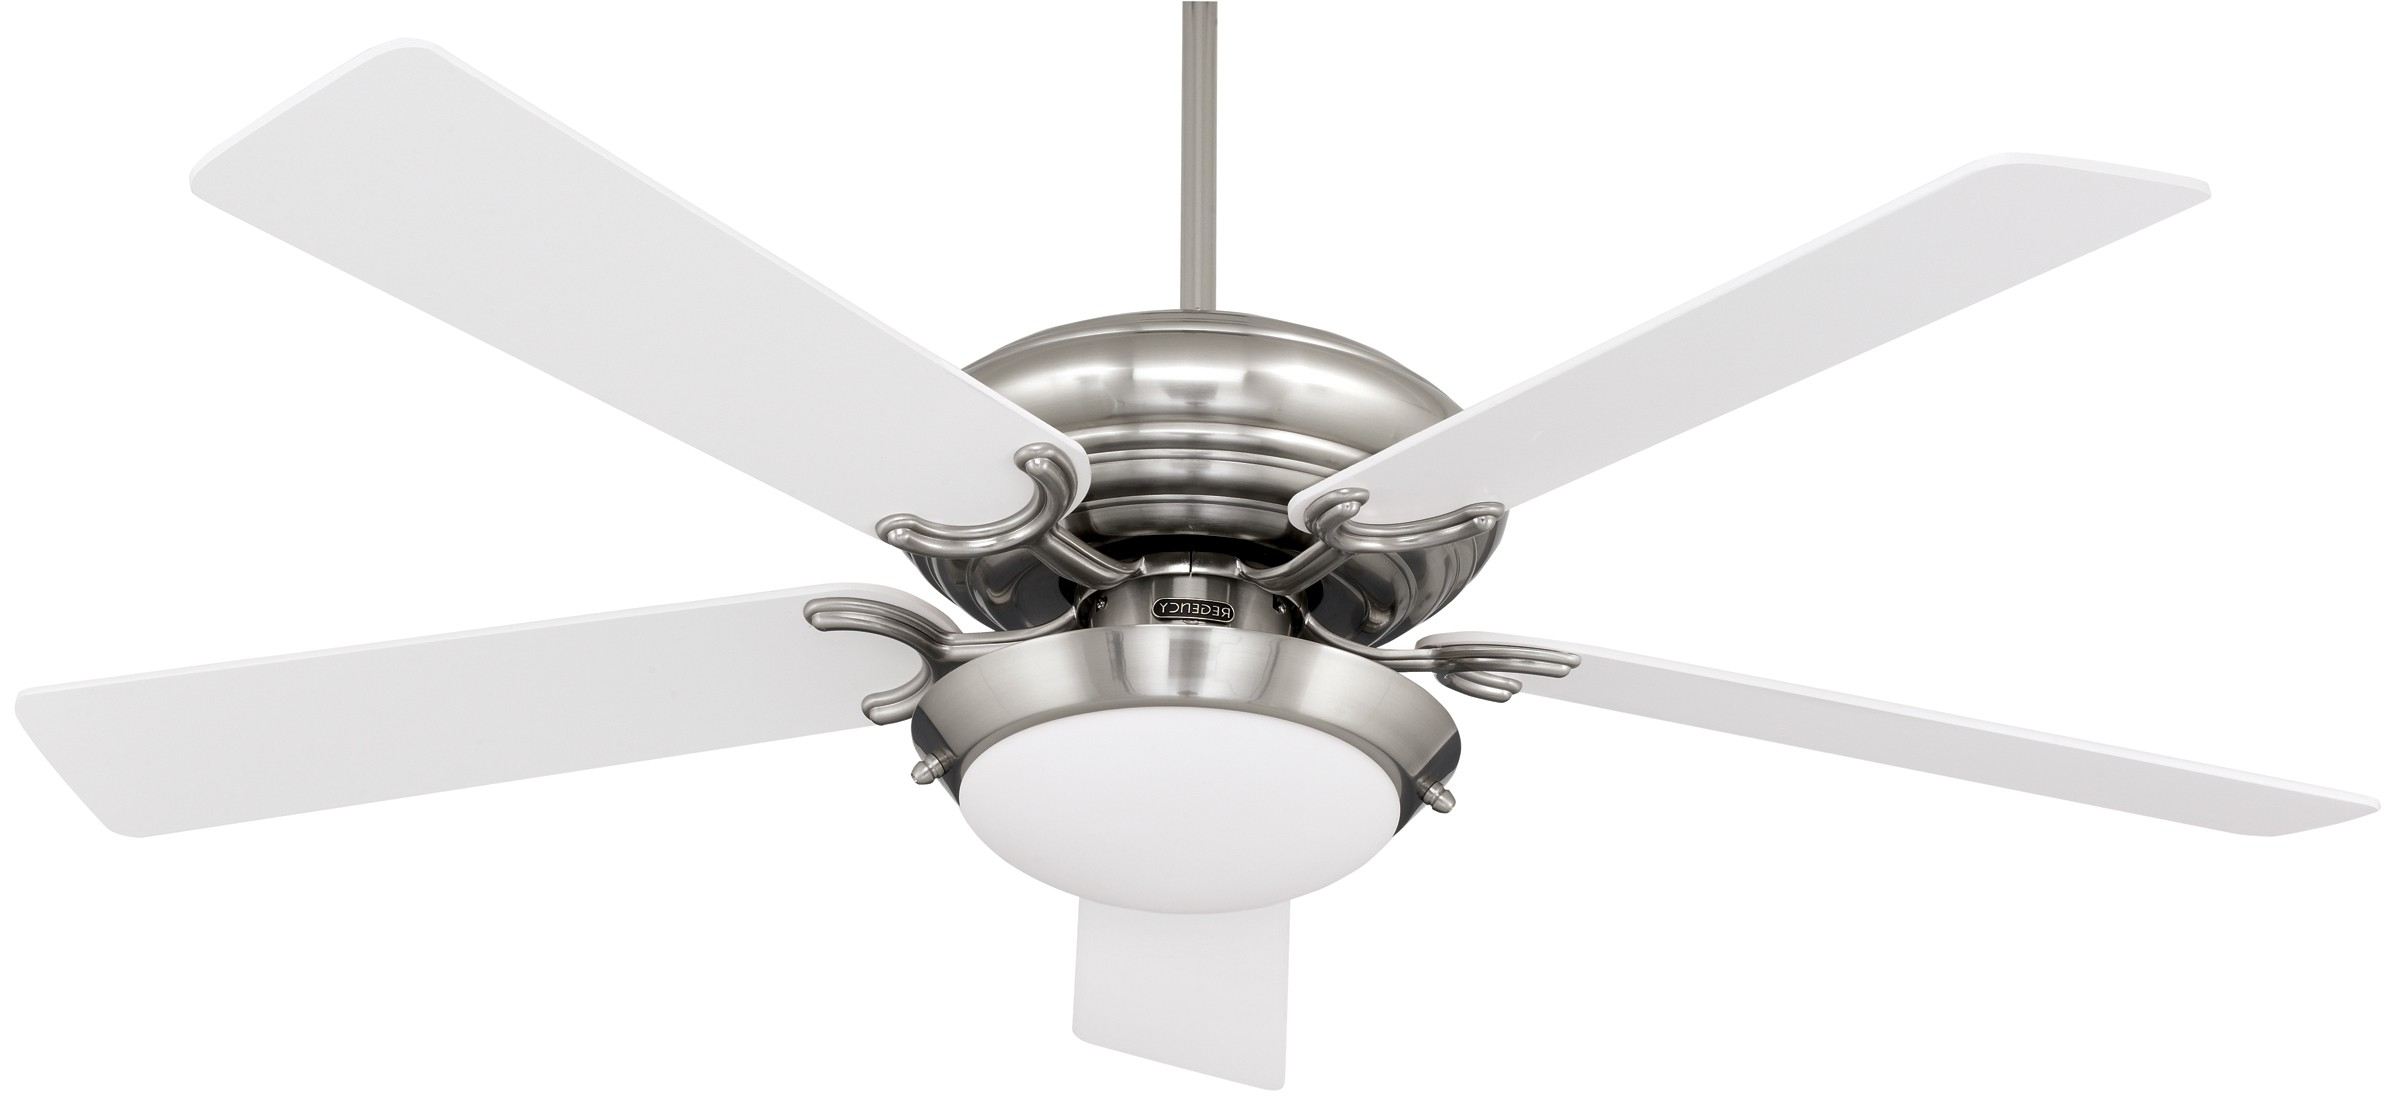 Ceiling: Amusing Ceiling Fans With Uplights Hunter Uplight Ceiling Pertaining To Most Current Outdoor Ceiling Fans With Uplights (Gallery 8 of 20)